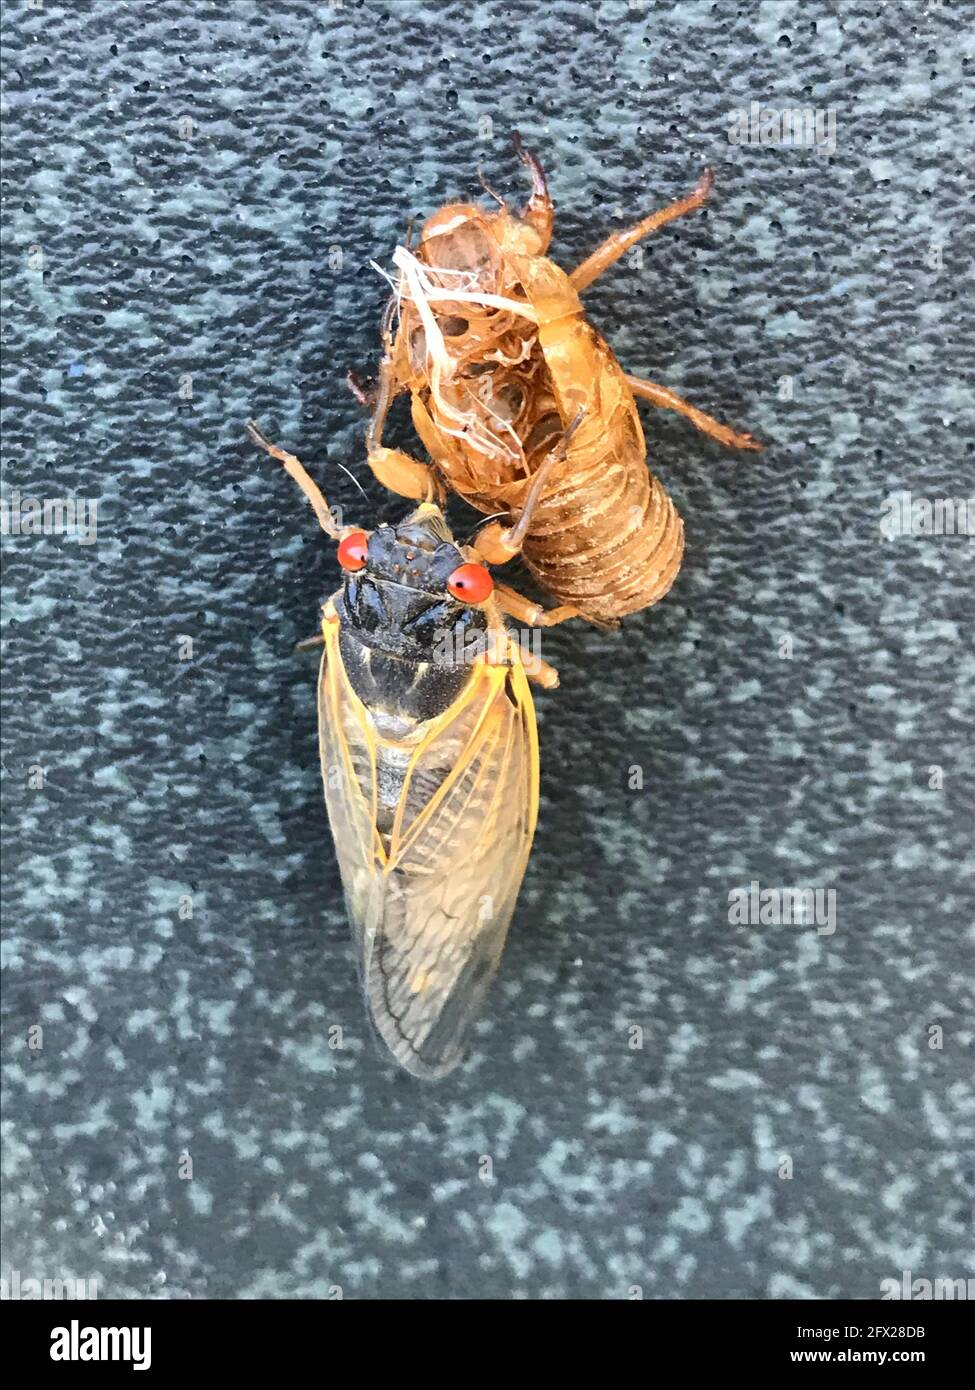 Bethesda, USA. 19th May, 2021. This image shows a molting Brut X cicada in Bethesda, near Washington. Loud cicadas of a species that appears only once every 17 years have led to increased emergency calls to authorities in Union County in the US state of Georgia. Credit: Cordula Berghahn/dpa/Alamy Live News Stock Photo